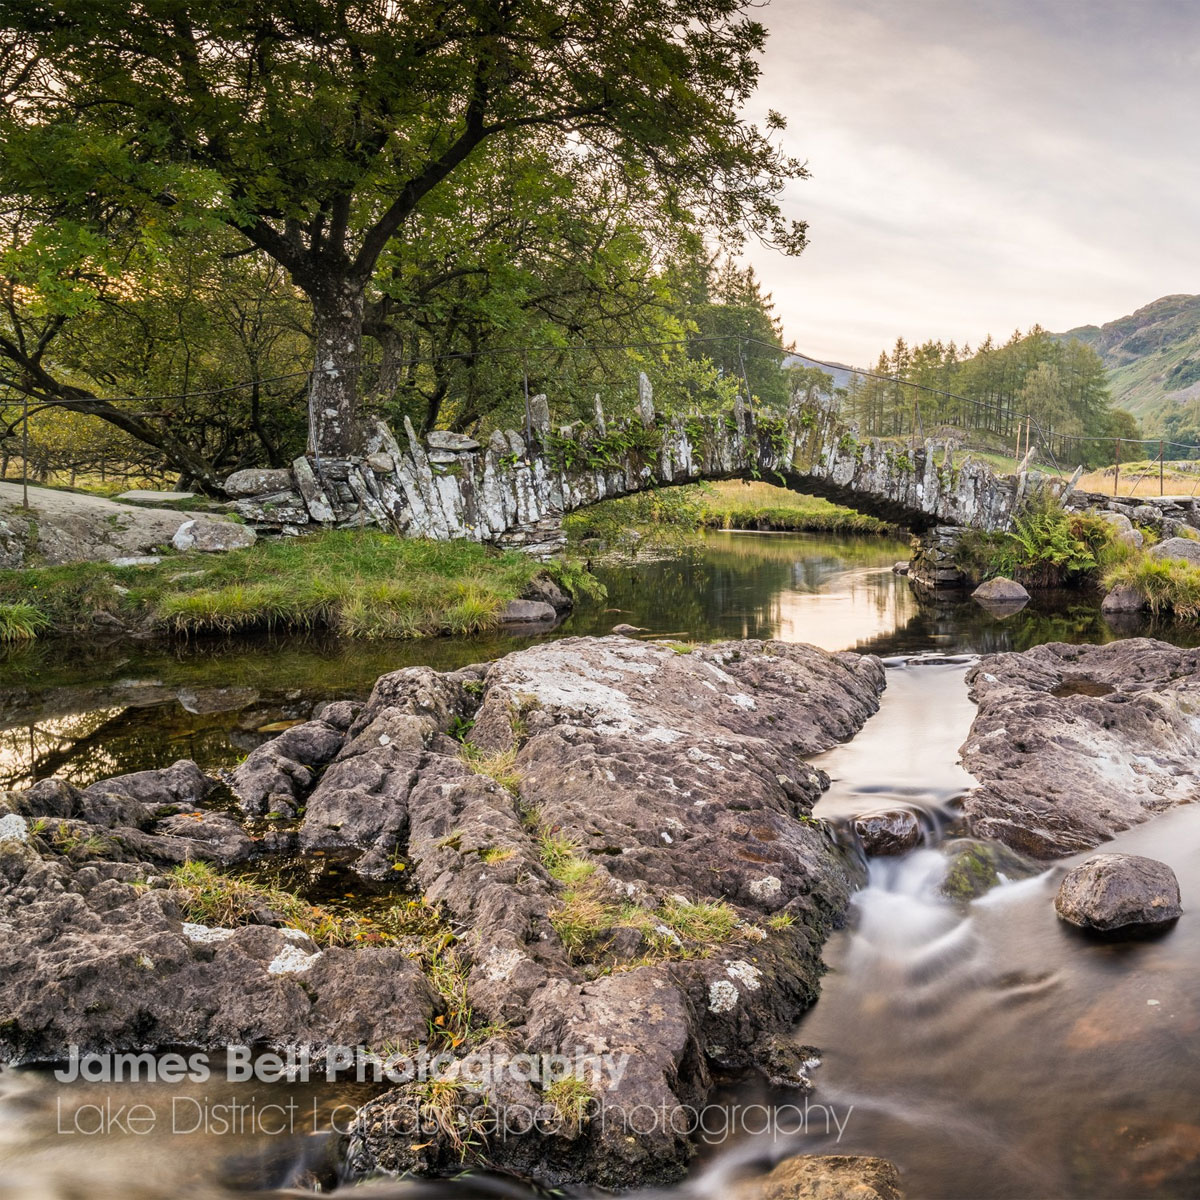 James Bell - Landscape Photography Tips